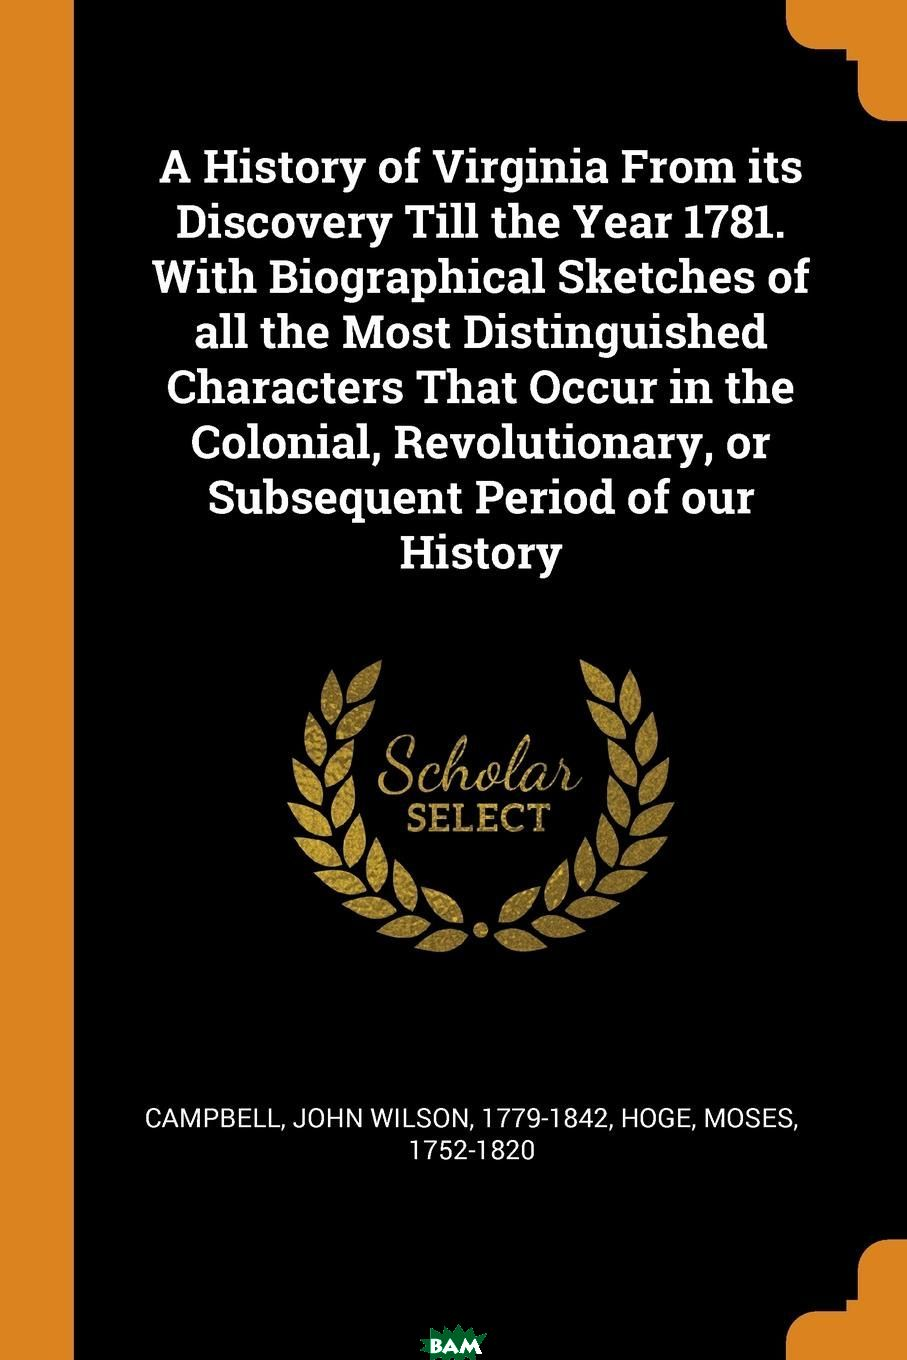 Купить A History of Virginia From its Discovery Till the Year 1781. With Biographical Sketches of all the Most Distinguished Characters That Occur in the Colonial, Revolutionary, or Subsequent Period of our, John Wilson Campbell, Moses Hoge, 9780342575619